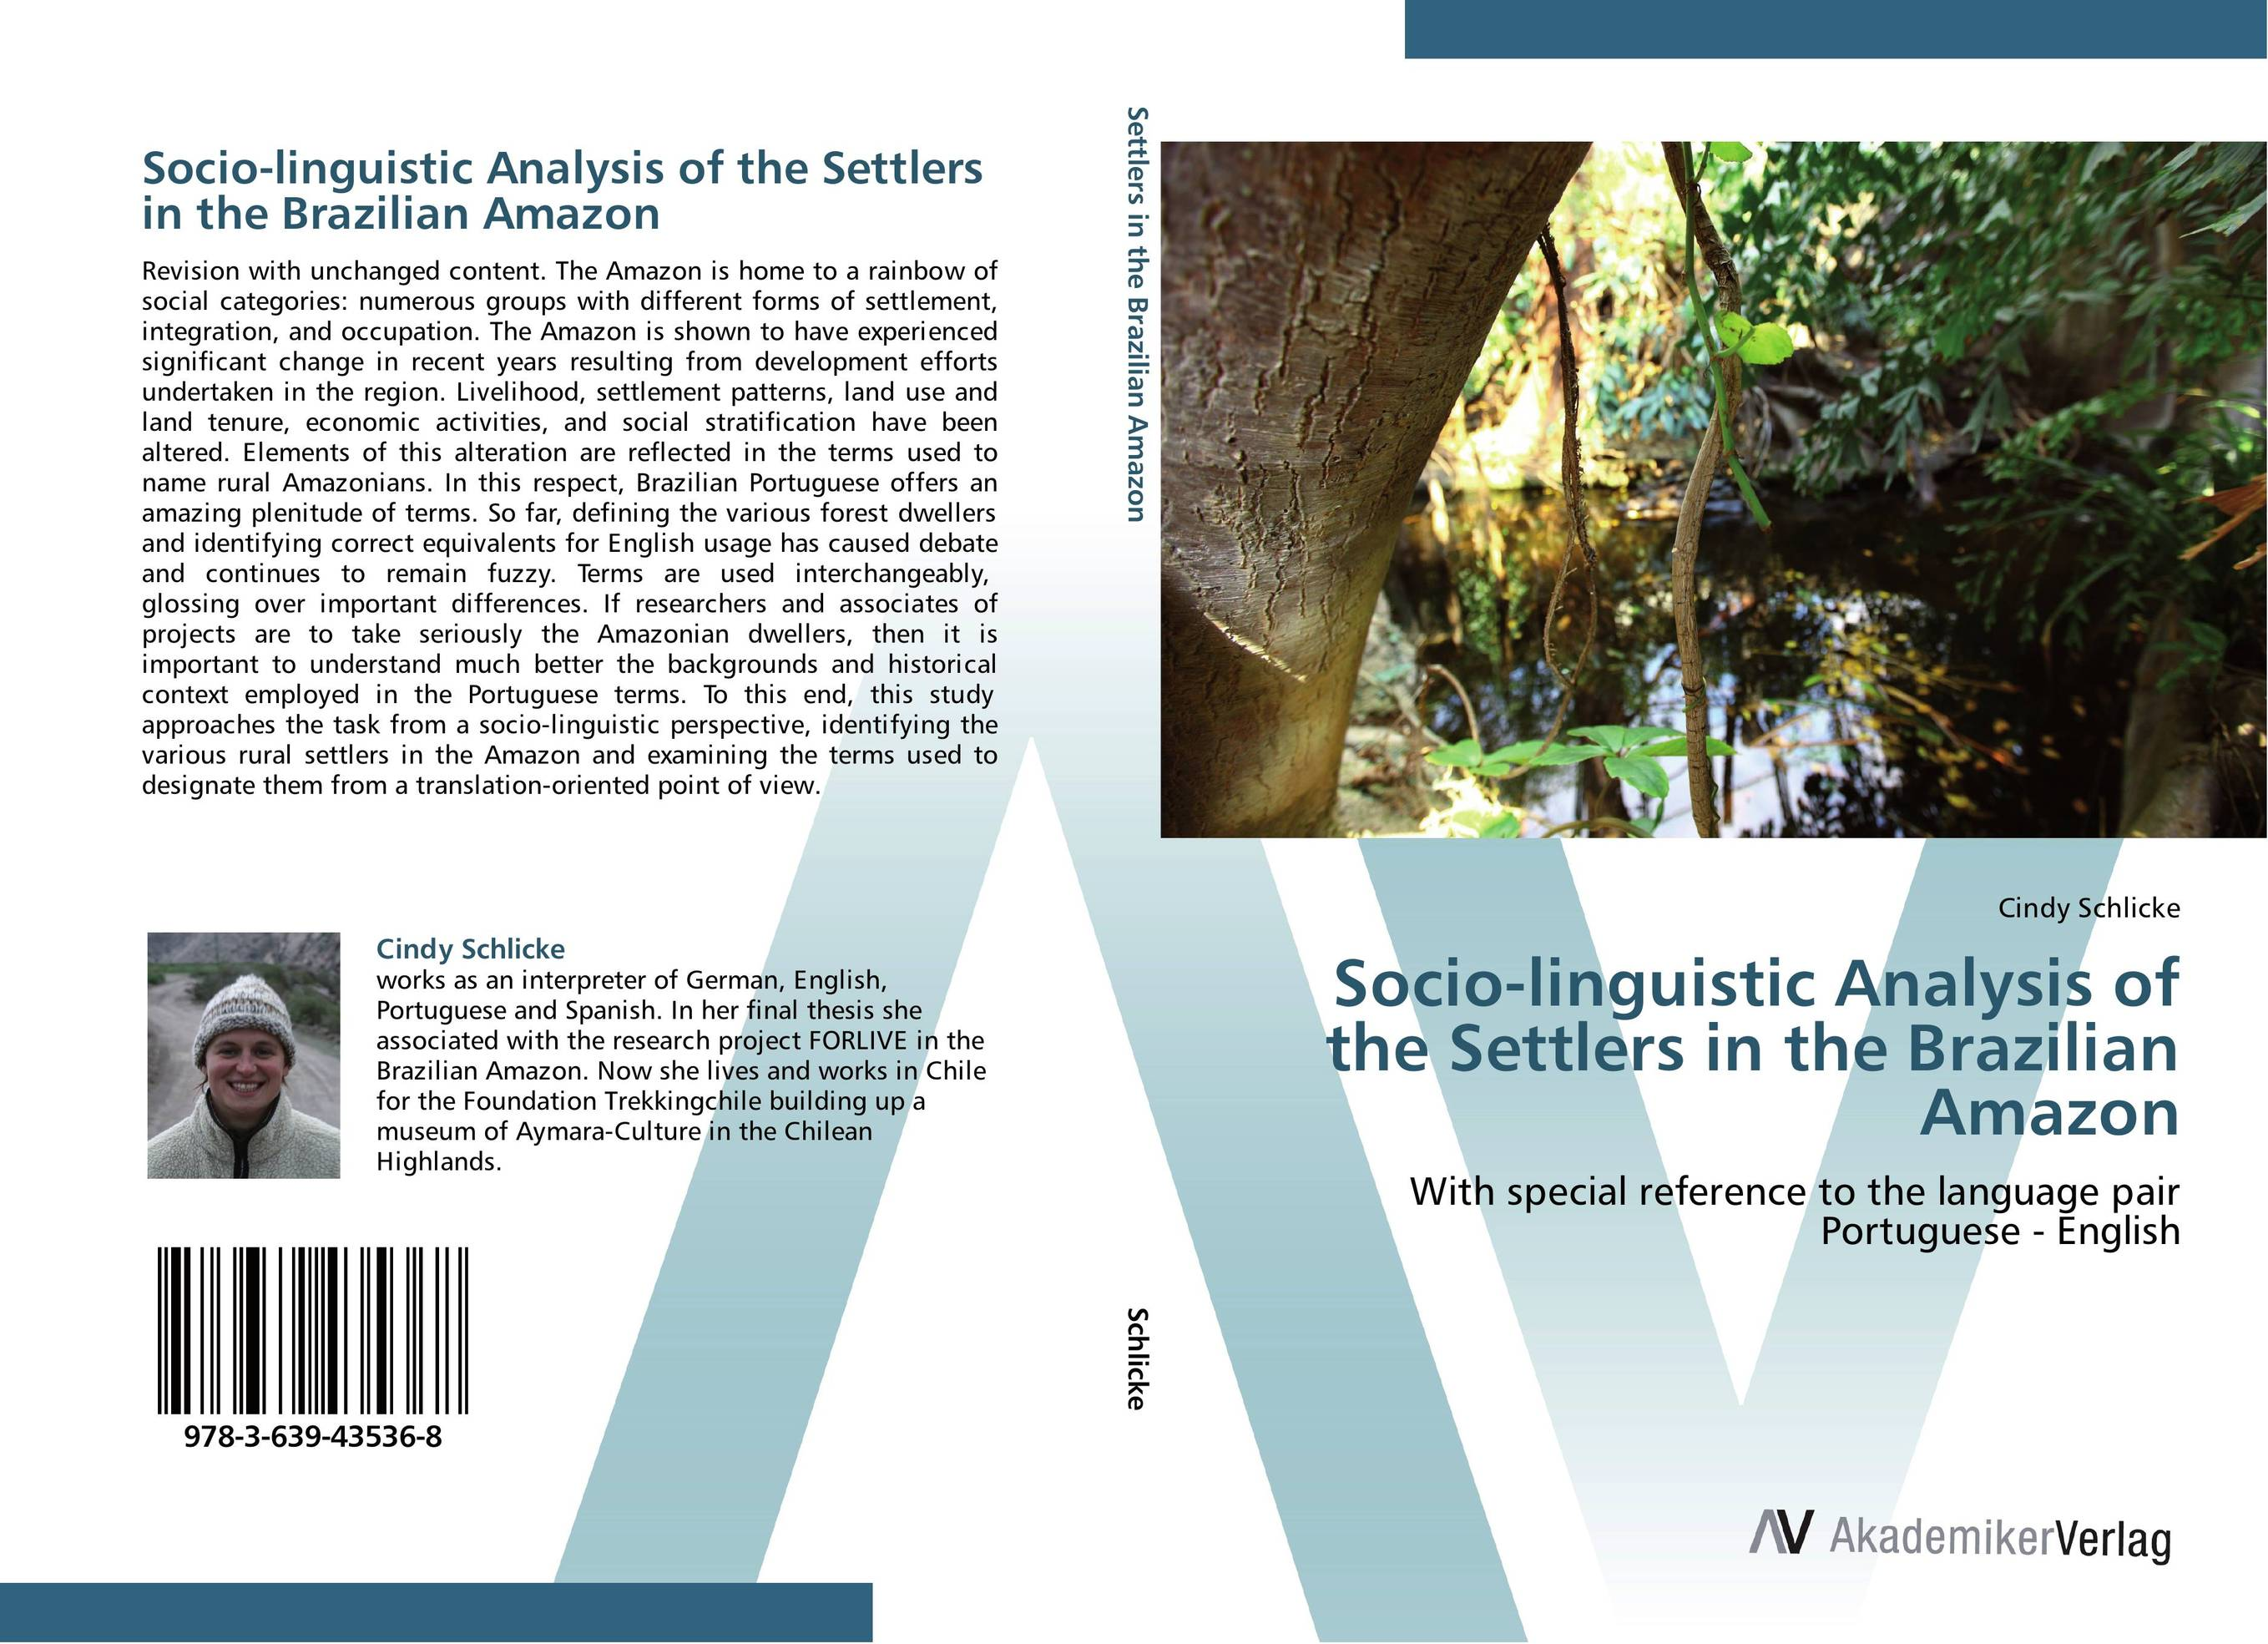 Socio-linguistic Analysis of the Settlers in the Brazilian Amazon agricultural land suitability evaluation and analysis